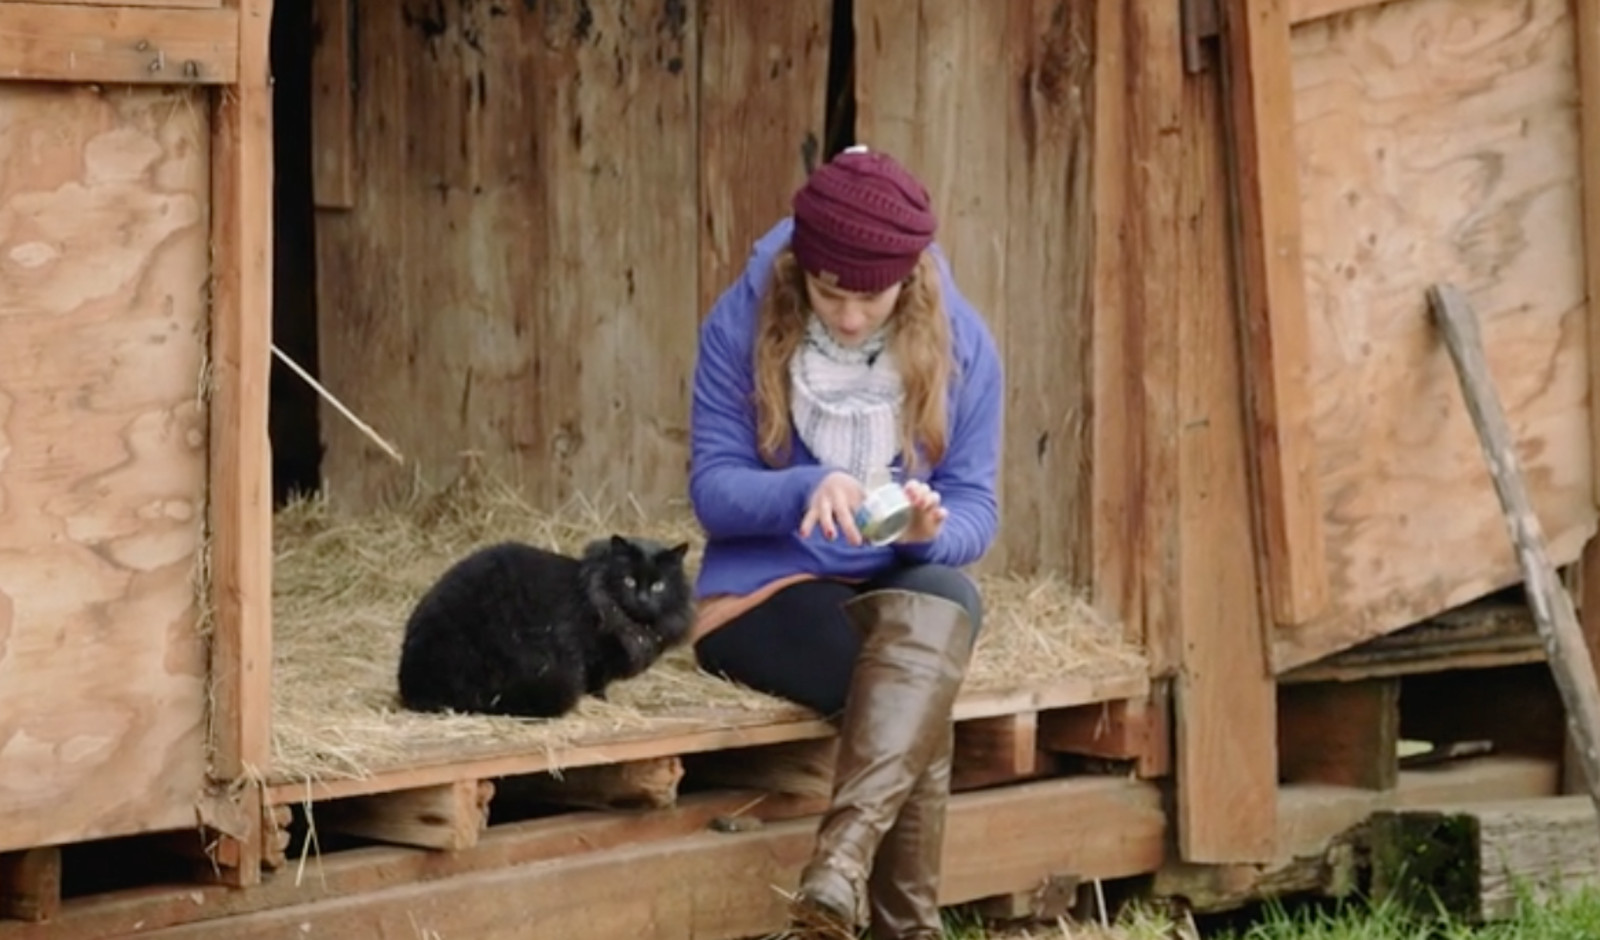 3 Awesome Programs That are Helping Feral Cats by Giving Them Jobs